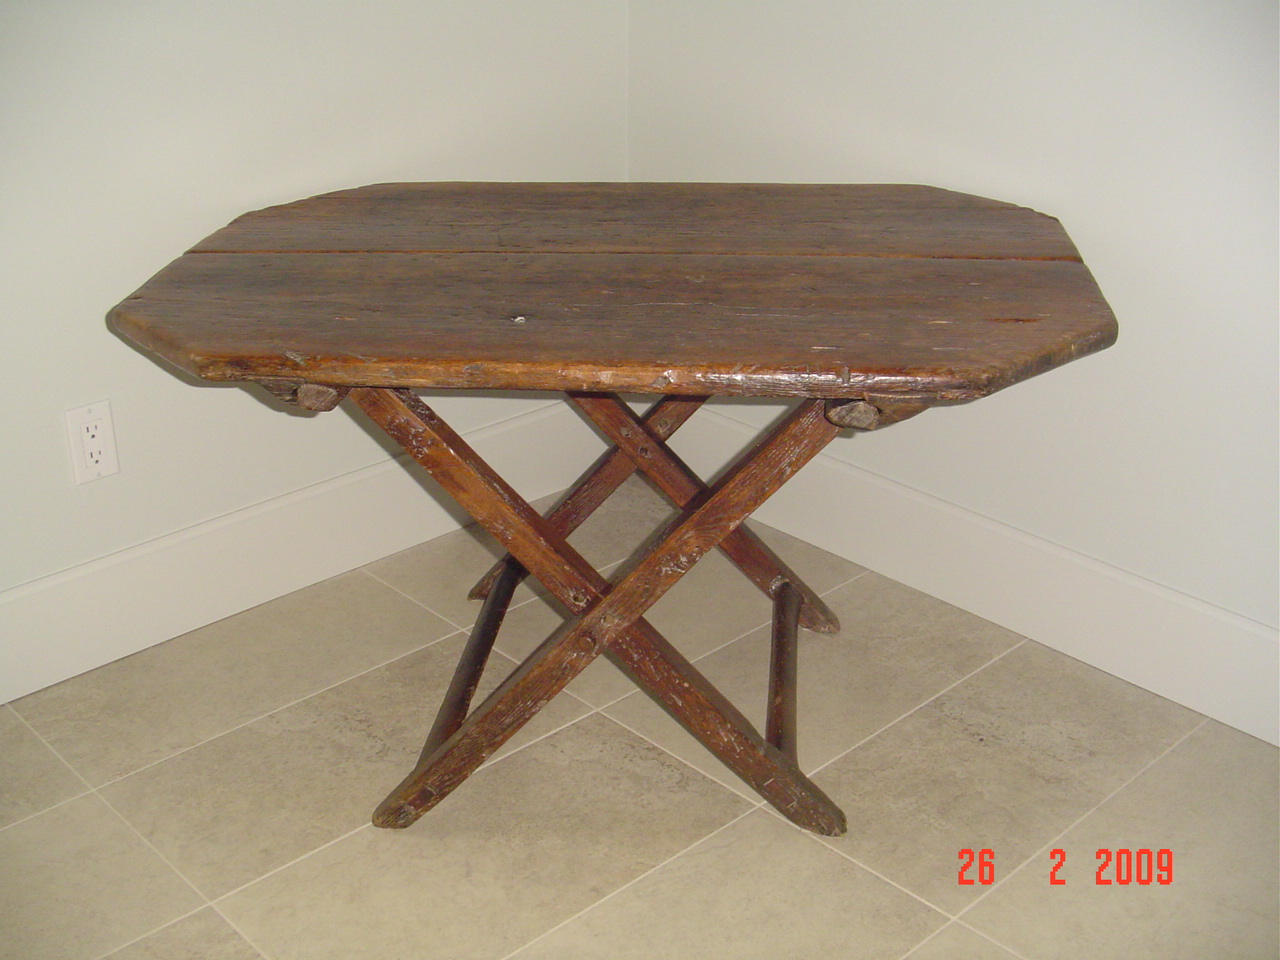 PRIMITIVE TRESTLE TABLE Canadian pine wood furniture  : ori14579165830571145916tabletrteaux1 from www.antiques.com size 1280 x 960 jpeg 315kB